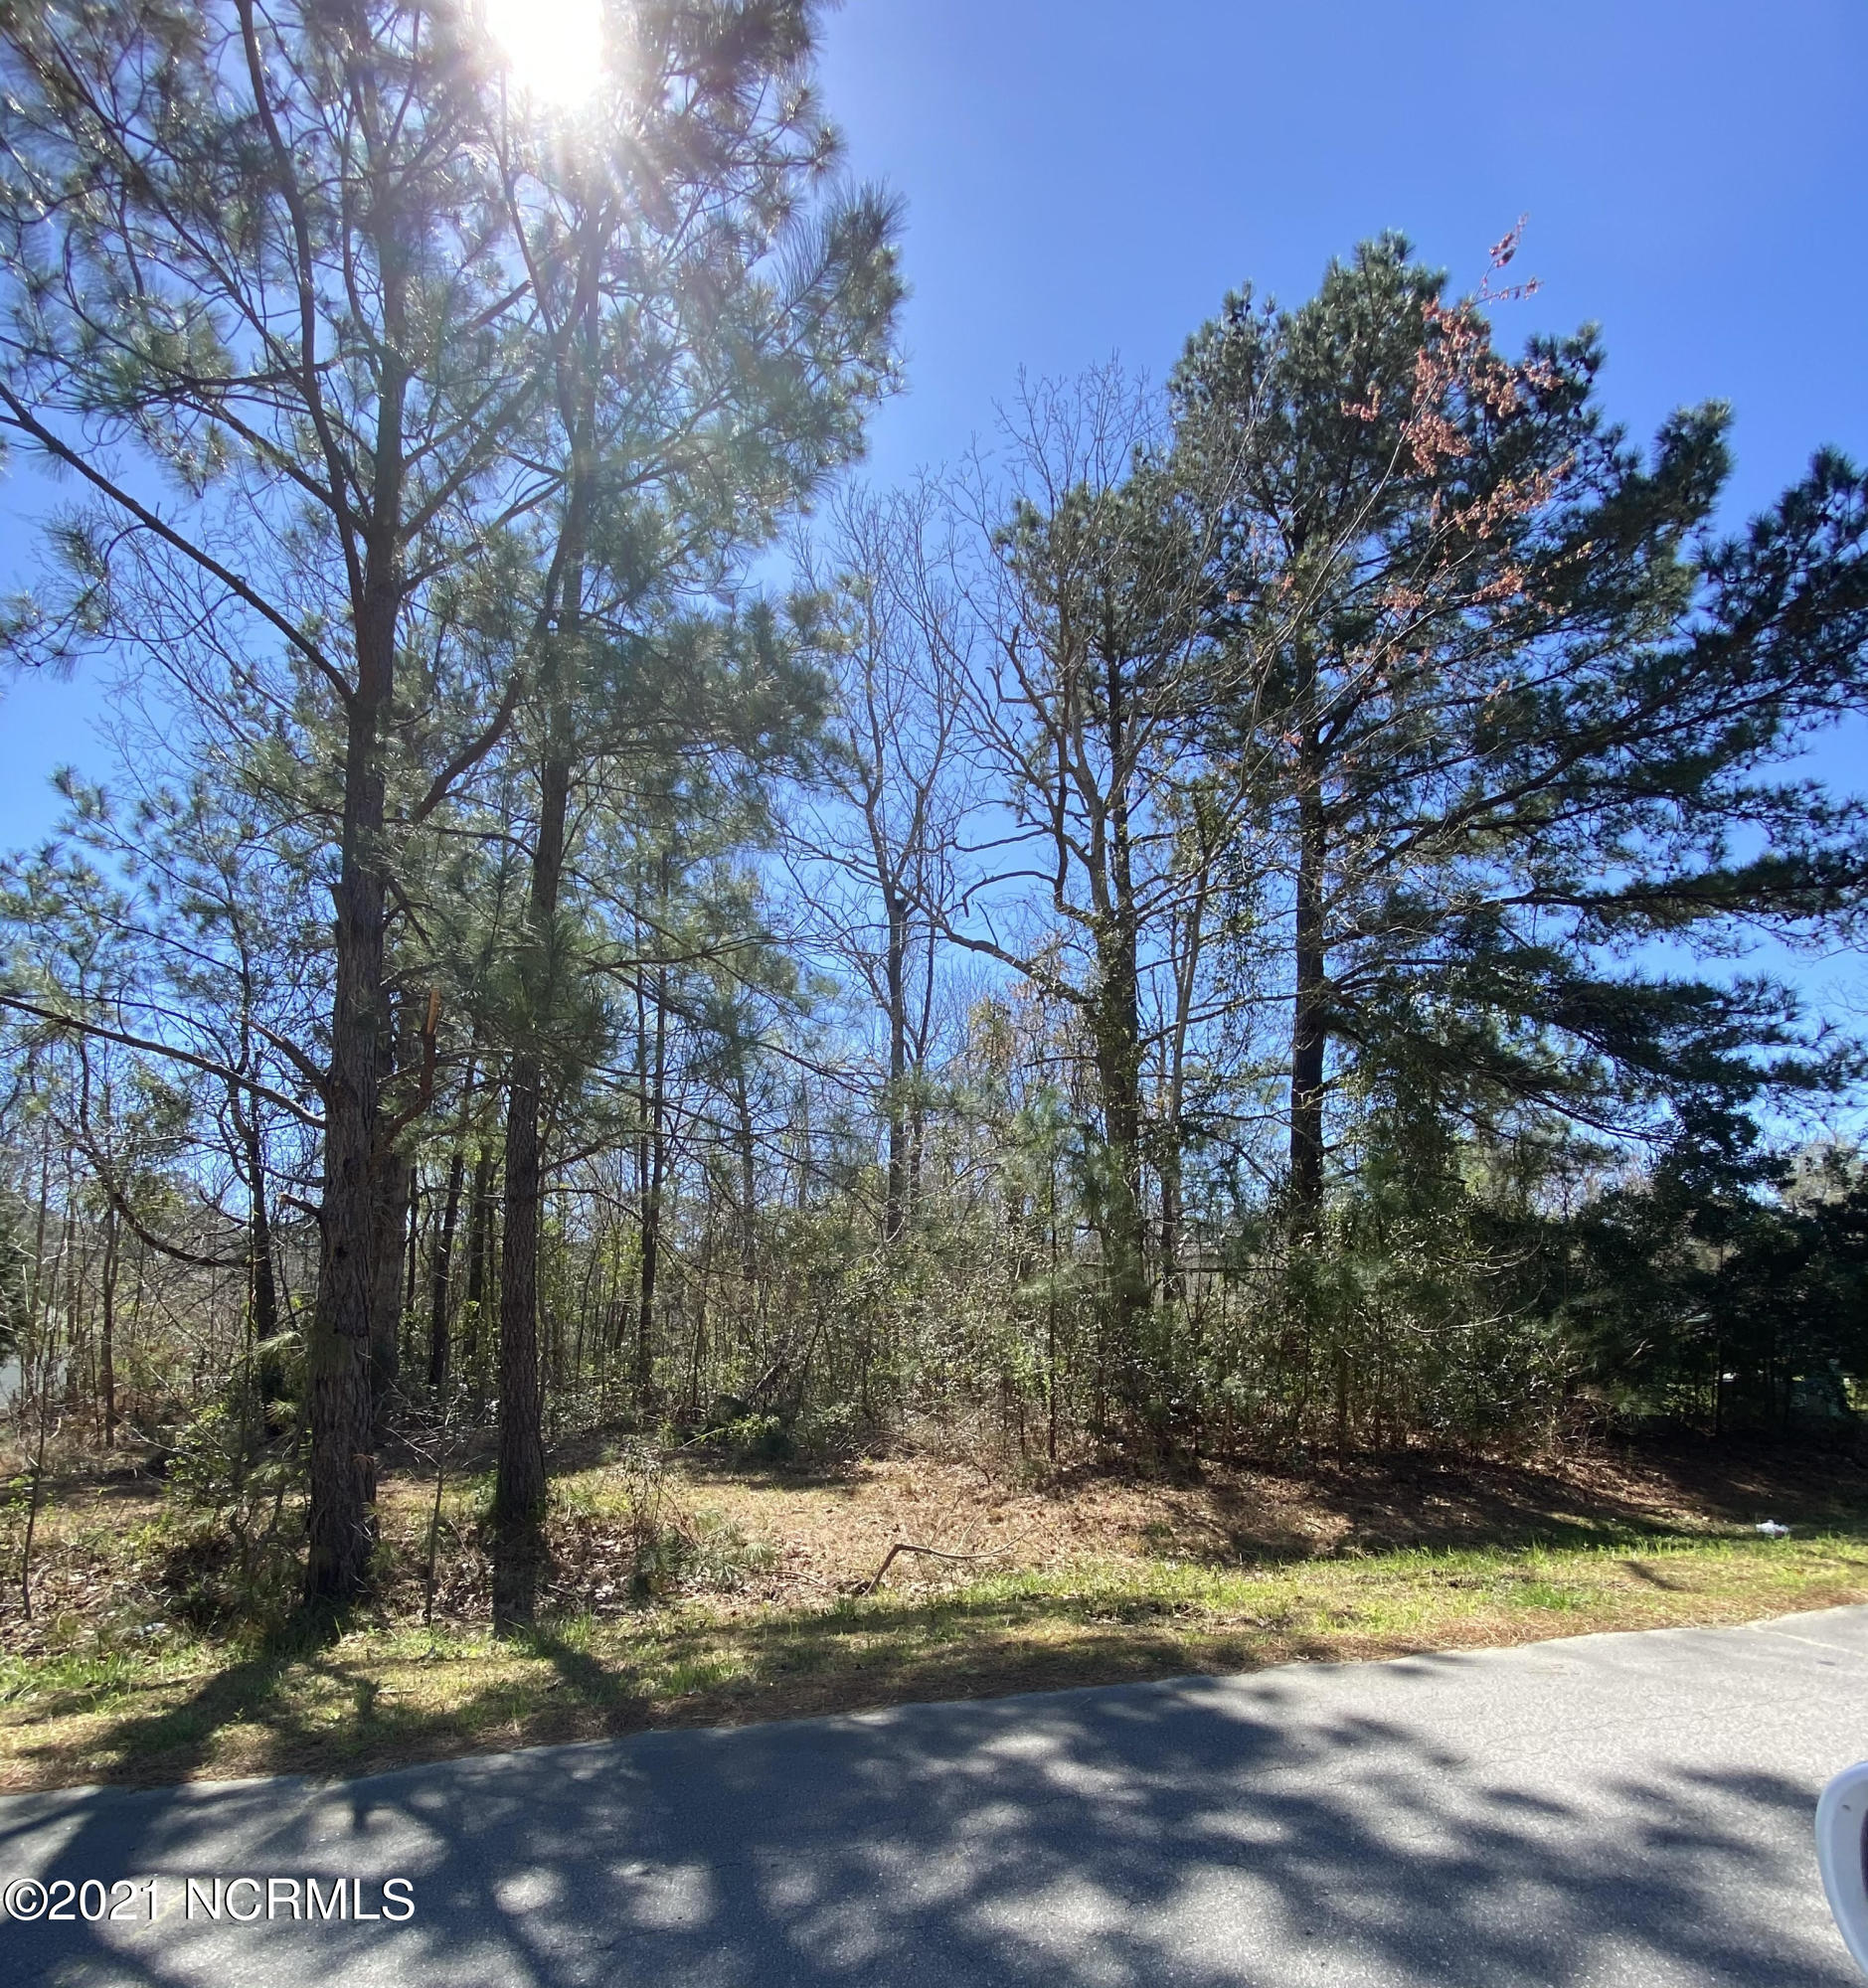 An affordable lot to bring your dream home to life! In award-winning Carteret County School district, Rolling Hill Estates offers no HOAs or city taxes! Convenient to Hwy 24 makes for easy access to Morehead City, Jacksonville, and only 10 minutes to Emerald Isle beaches! Enjoy the country feel at the coast!